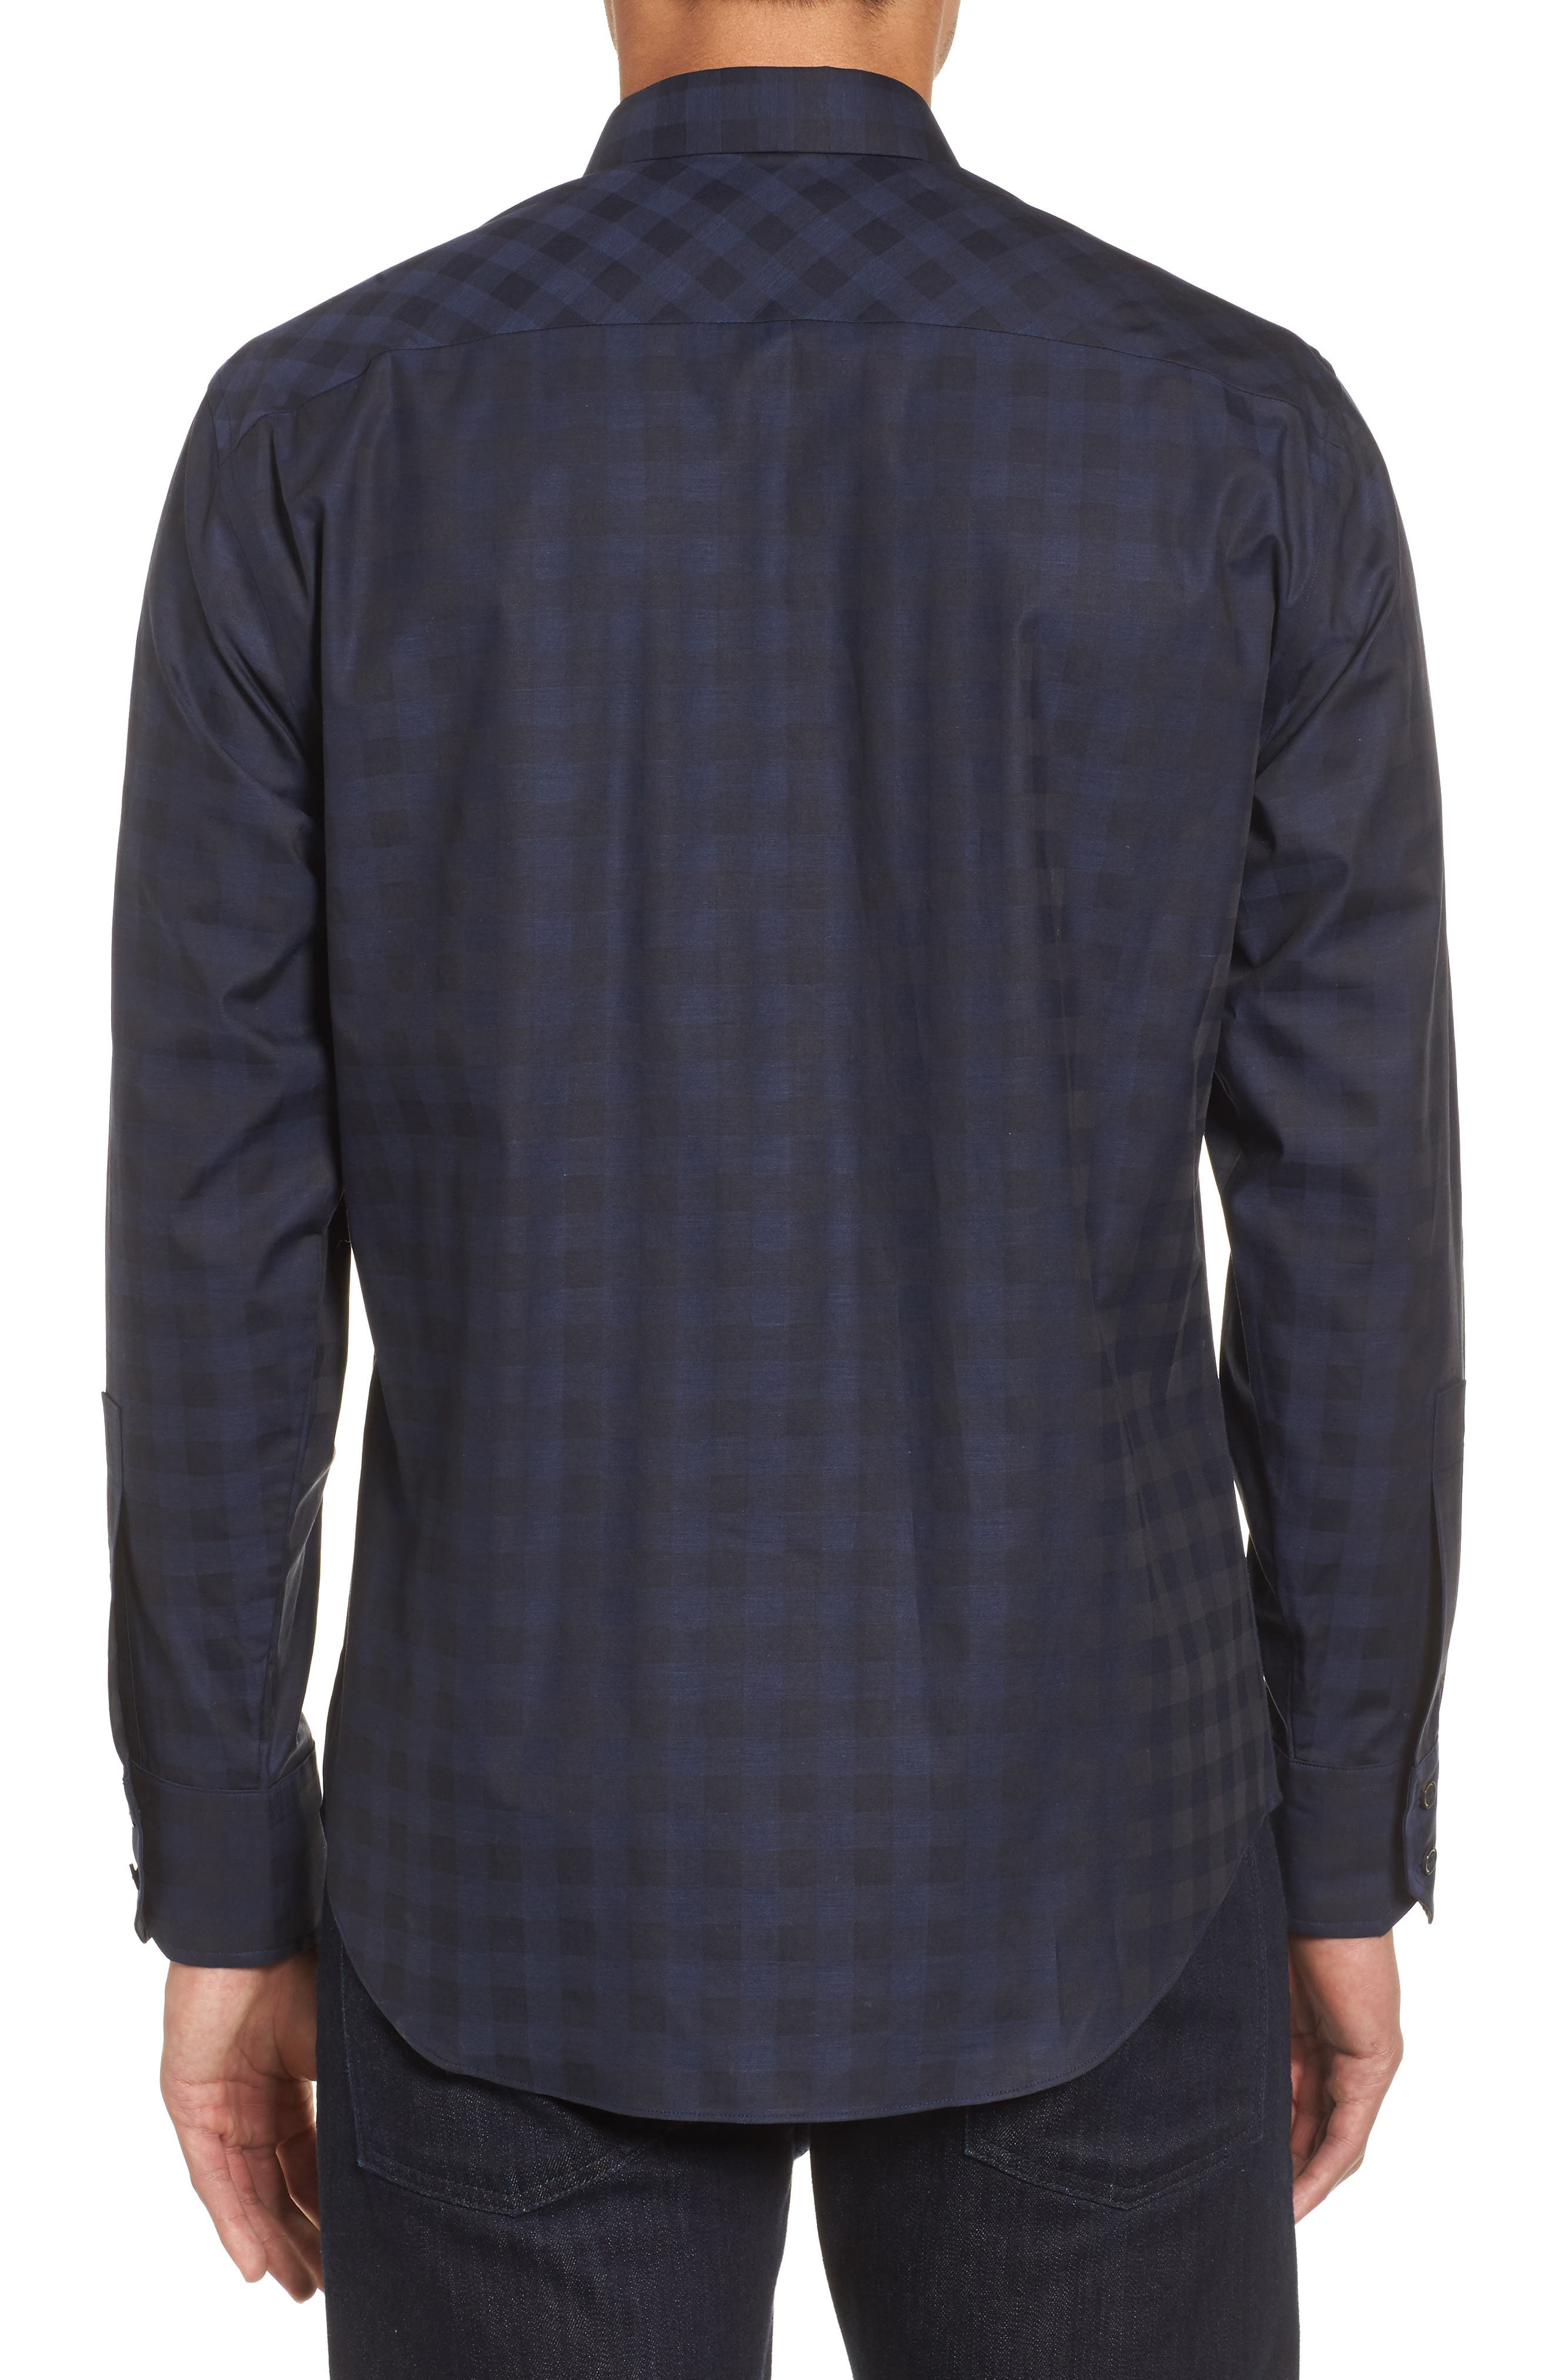 Torres Check Sport Shirt,                             Alternate thumbnail 2, color,                             Navy